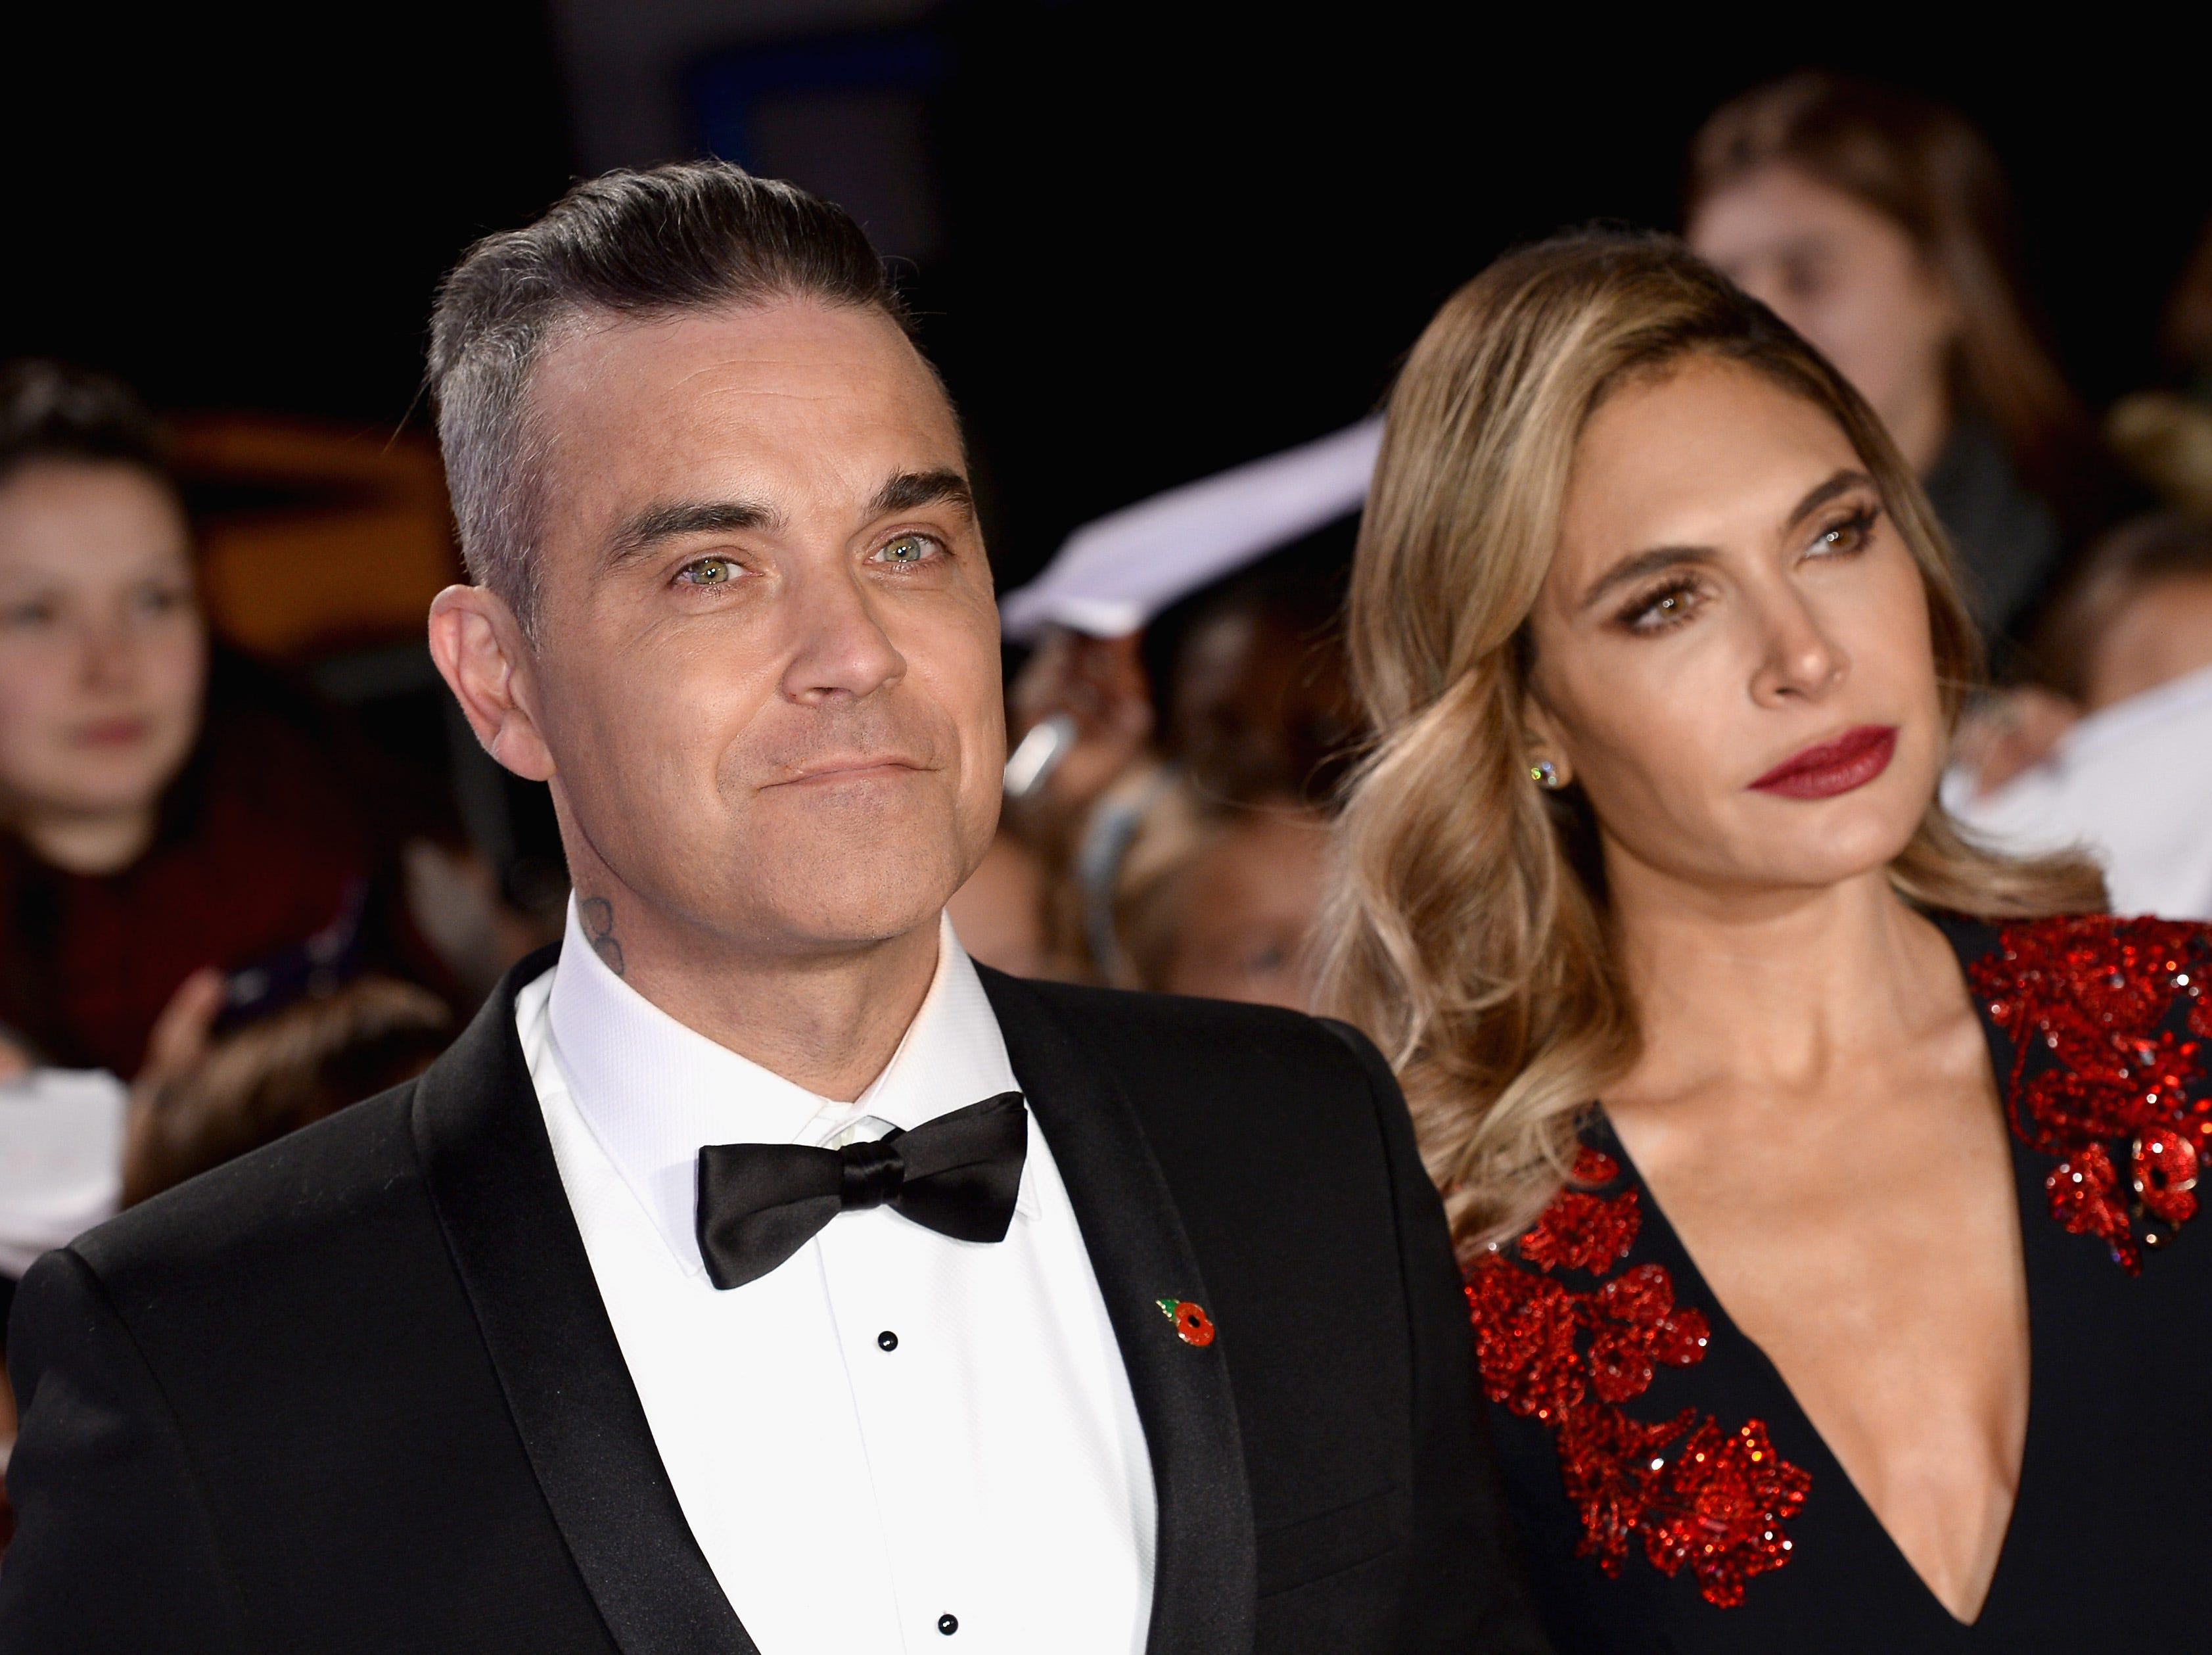 Robbie Williams and Ayda Field attend the Pride of Britain Awards 2018 on Oct. 29, 2018 in London.